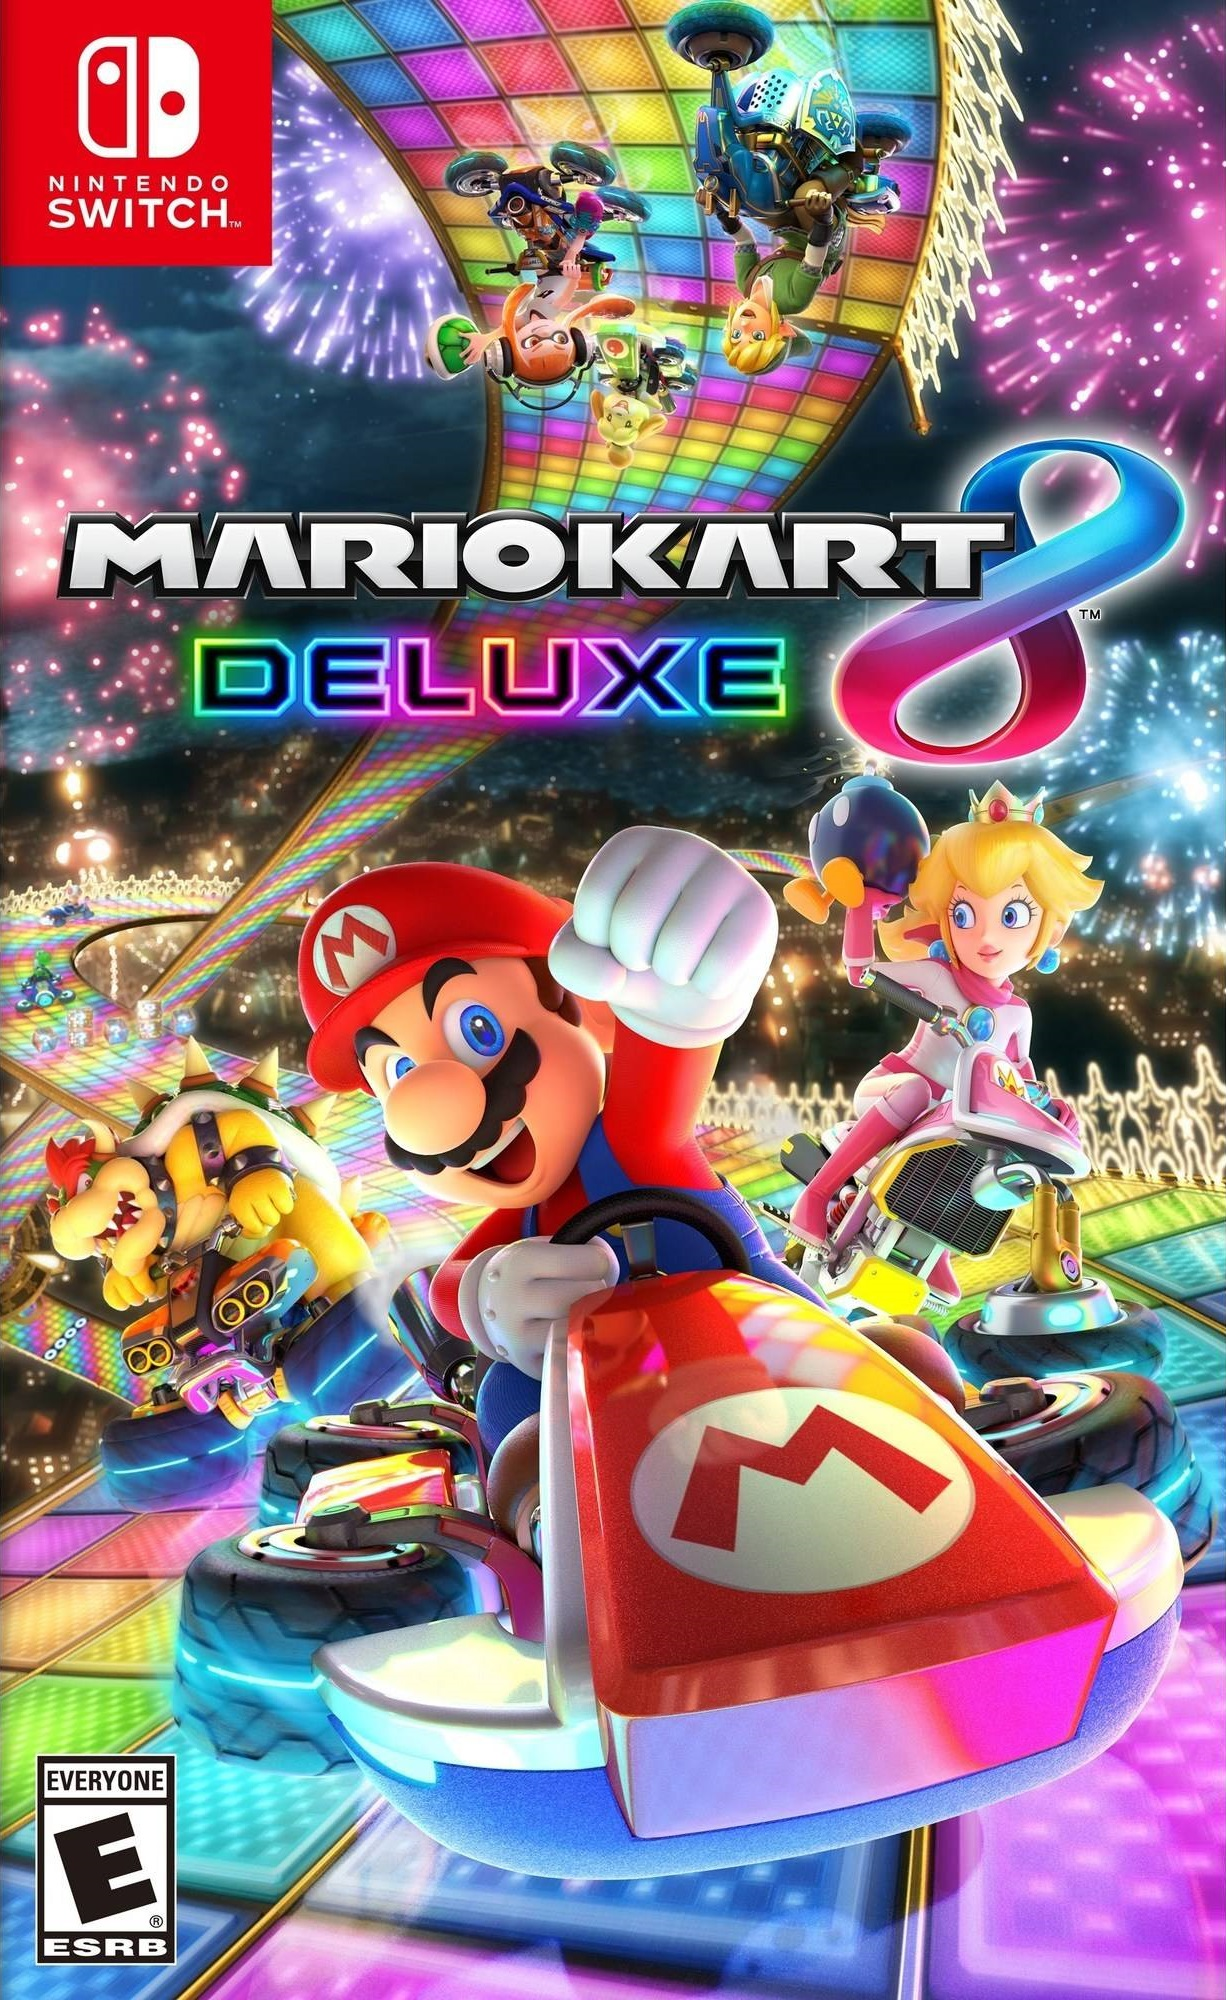 Mario Kart 8 Deluxe Video Game Cheat Codes Wiki Fandom